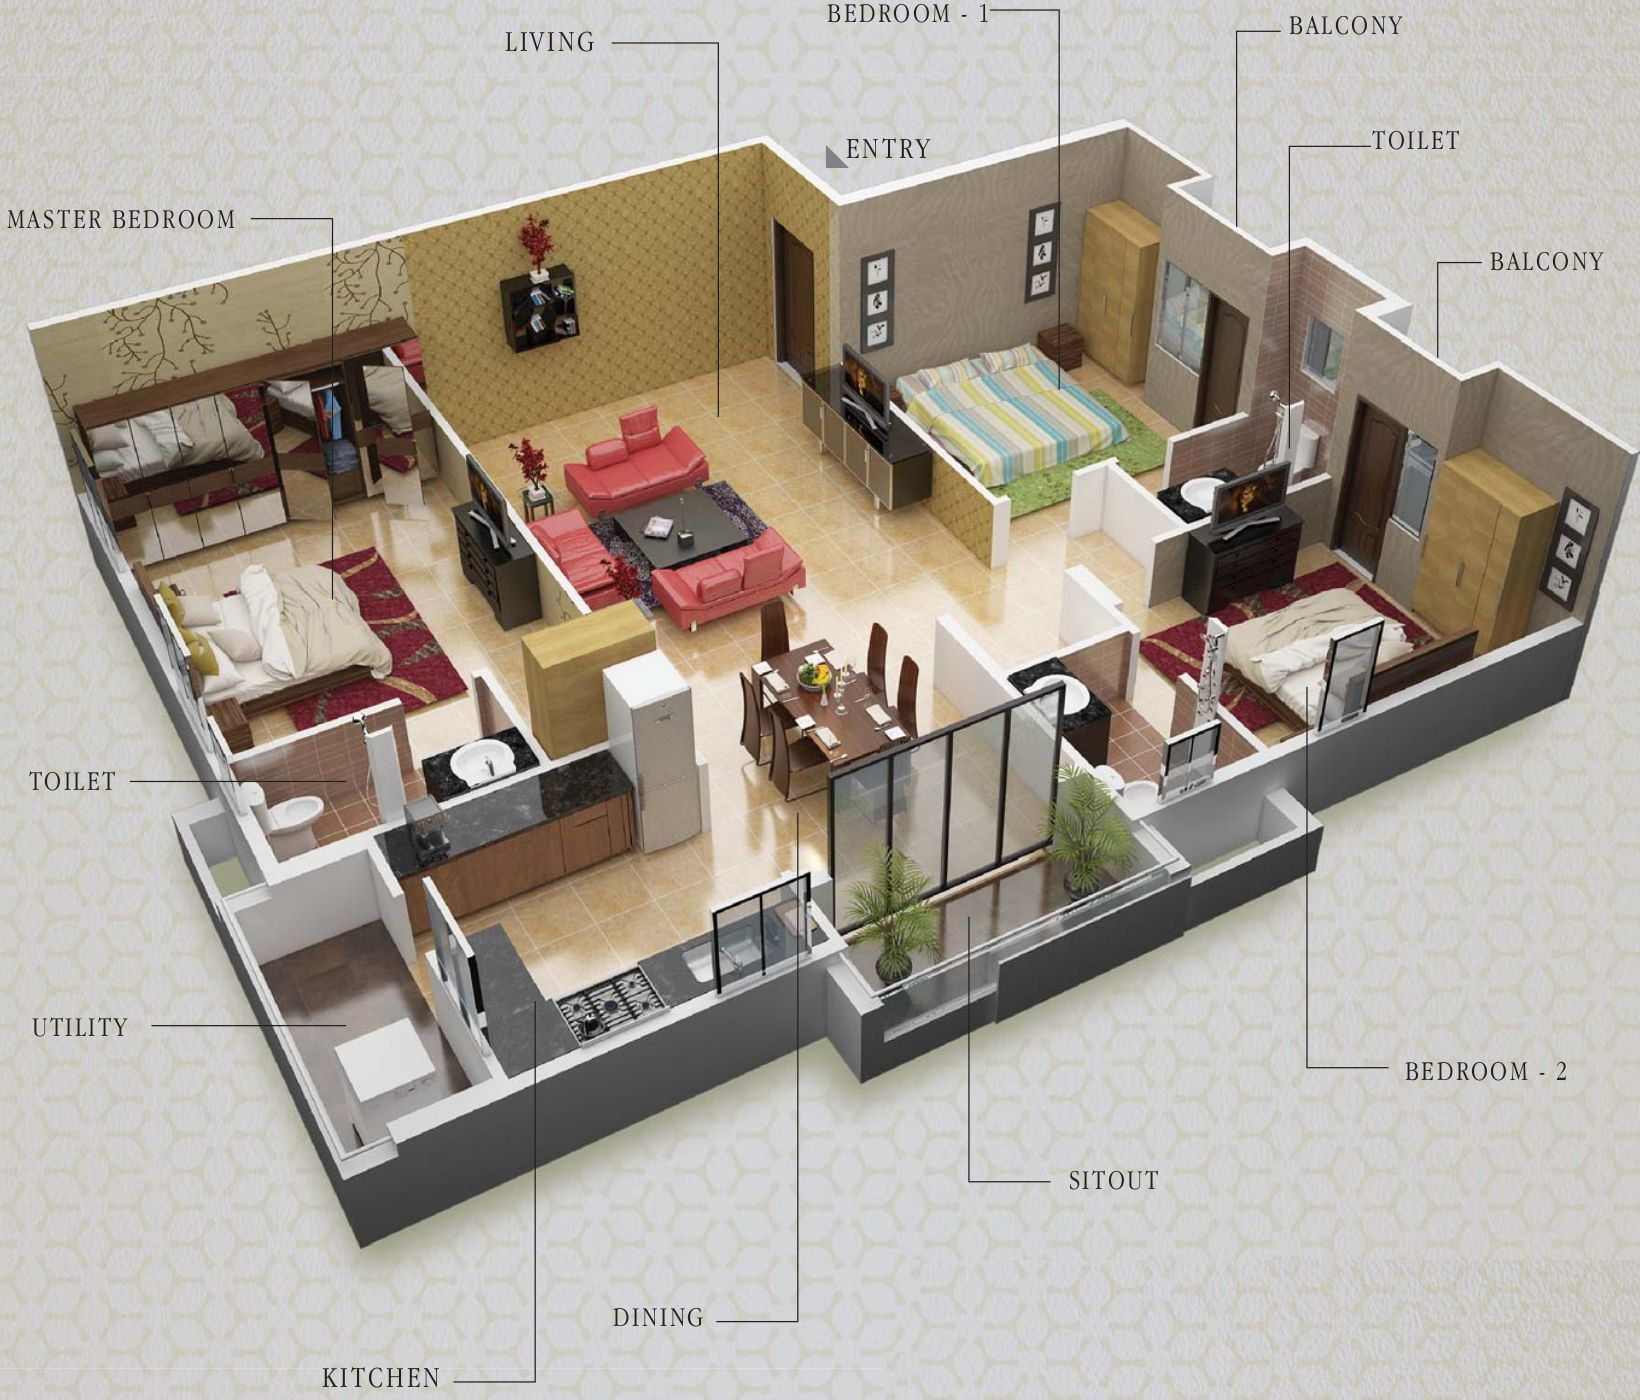 Dharma construction residency floor plan 3bhk 3t 1 795 30 by 45 house plans